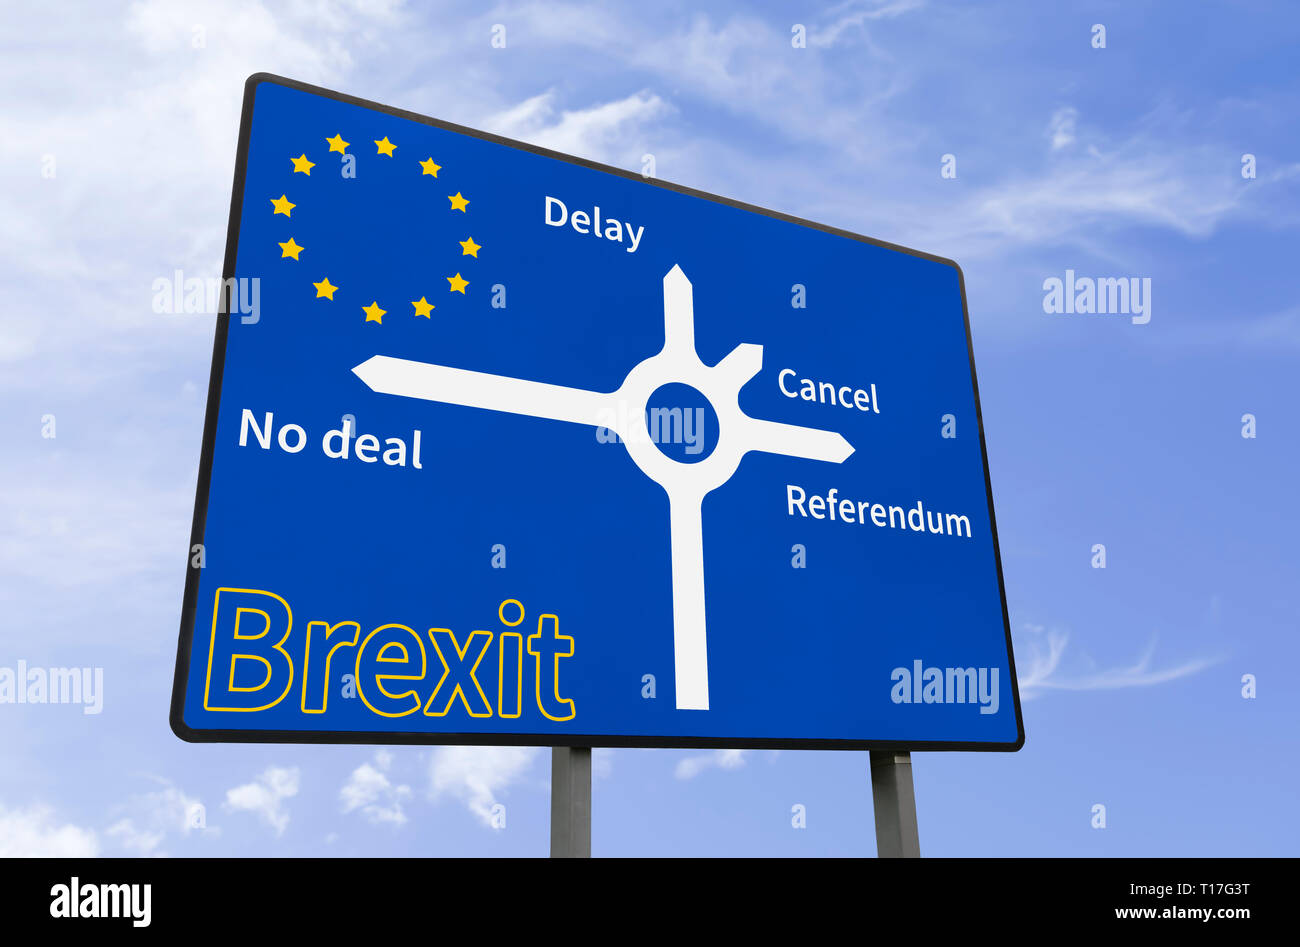 Brexit sign showing options of Cancel, Referendum, Delay and No deal. Leaving EU options. - Stock Image